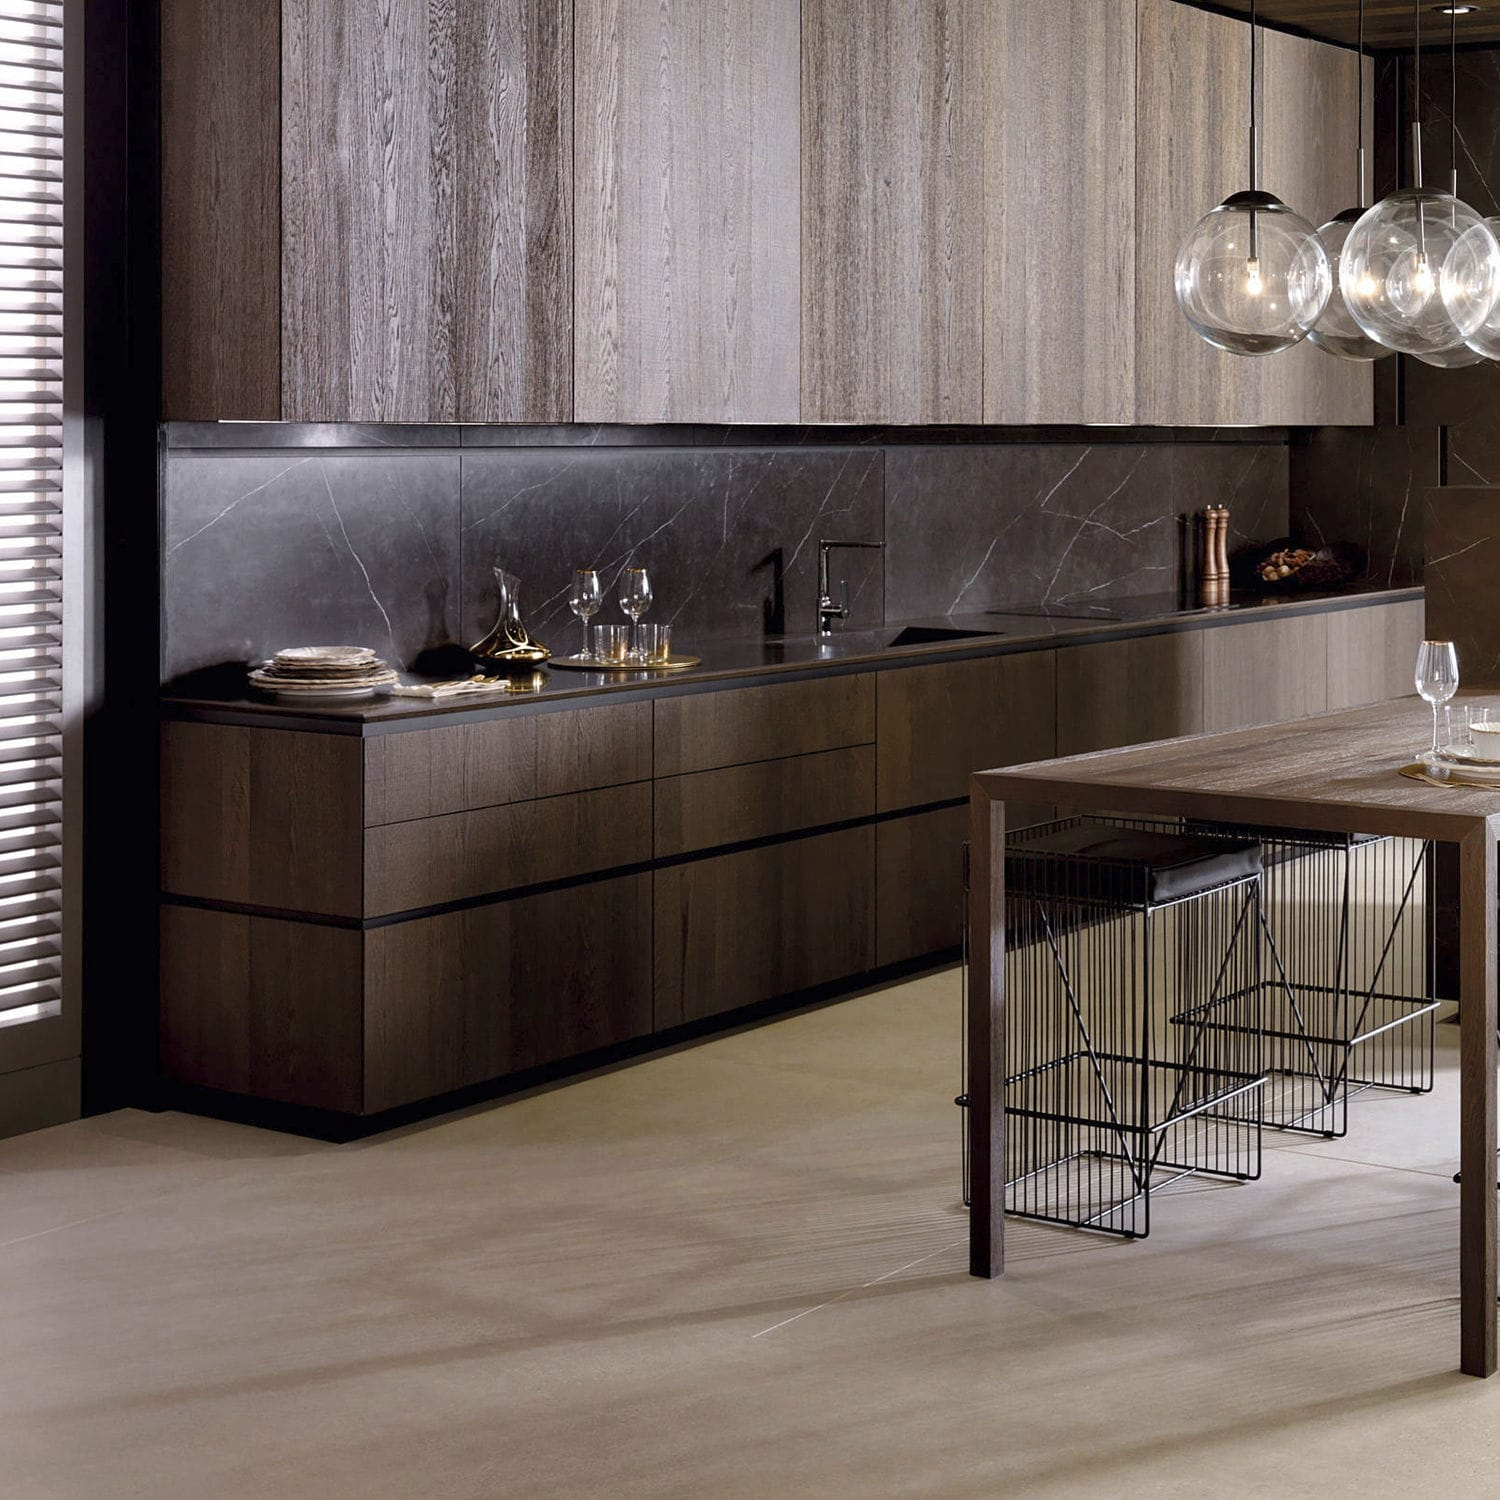 Contemporary Kitchen Emotions E9 30 Premium Gamadecor Porcelanosa Grupo Oak Particle Board Steel